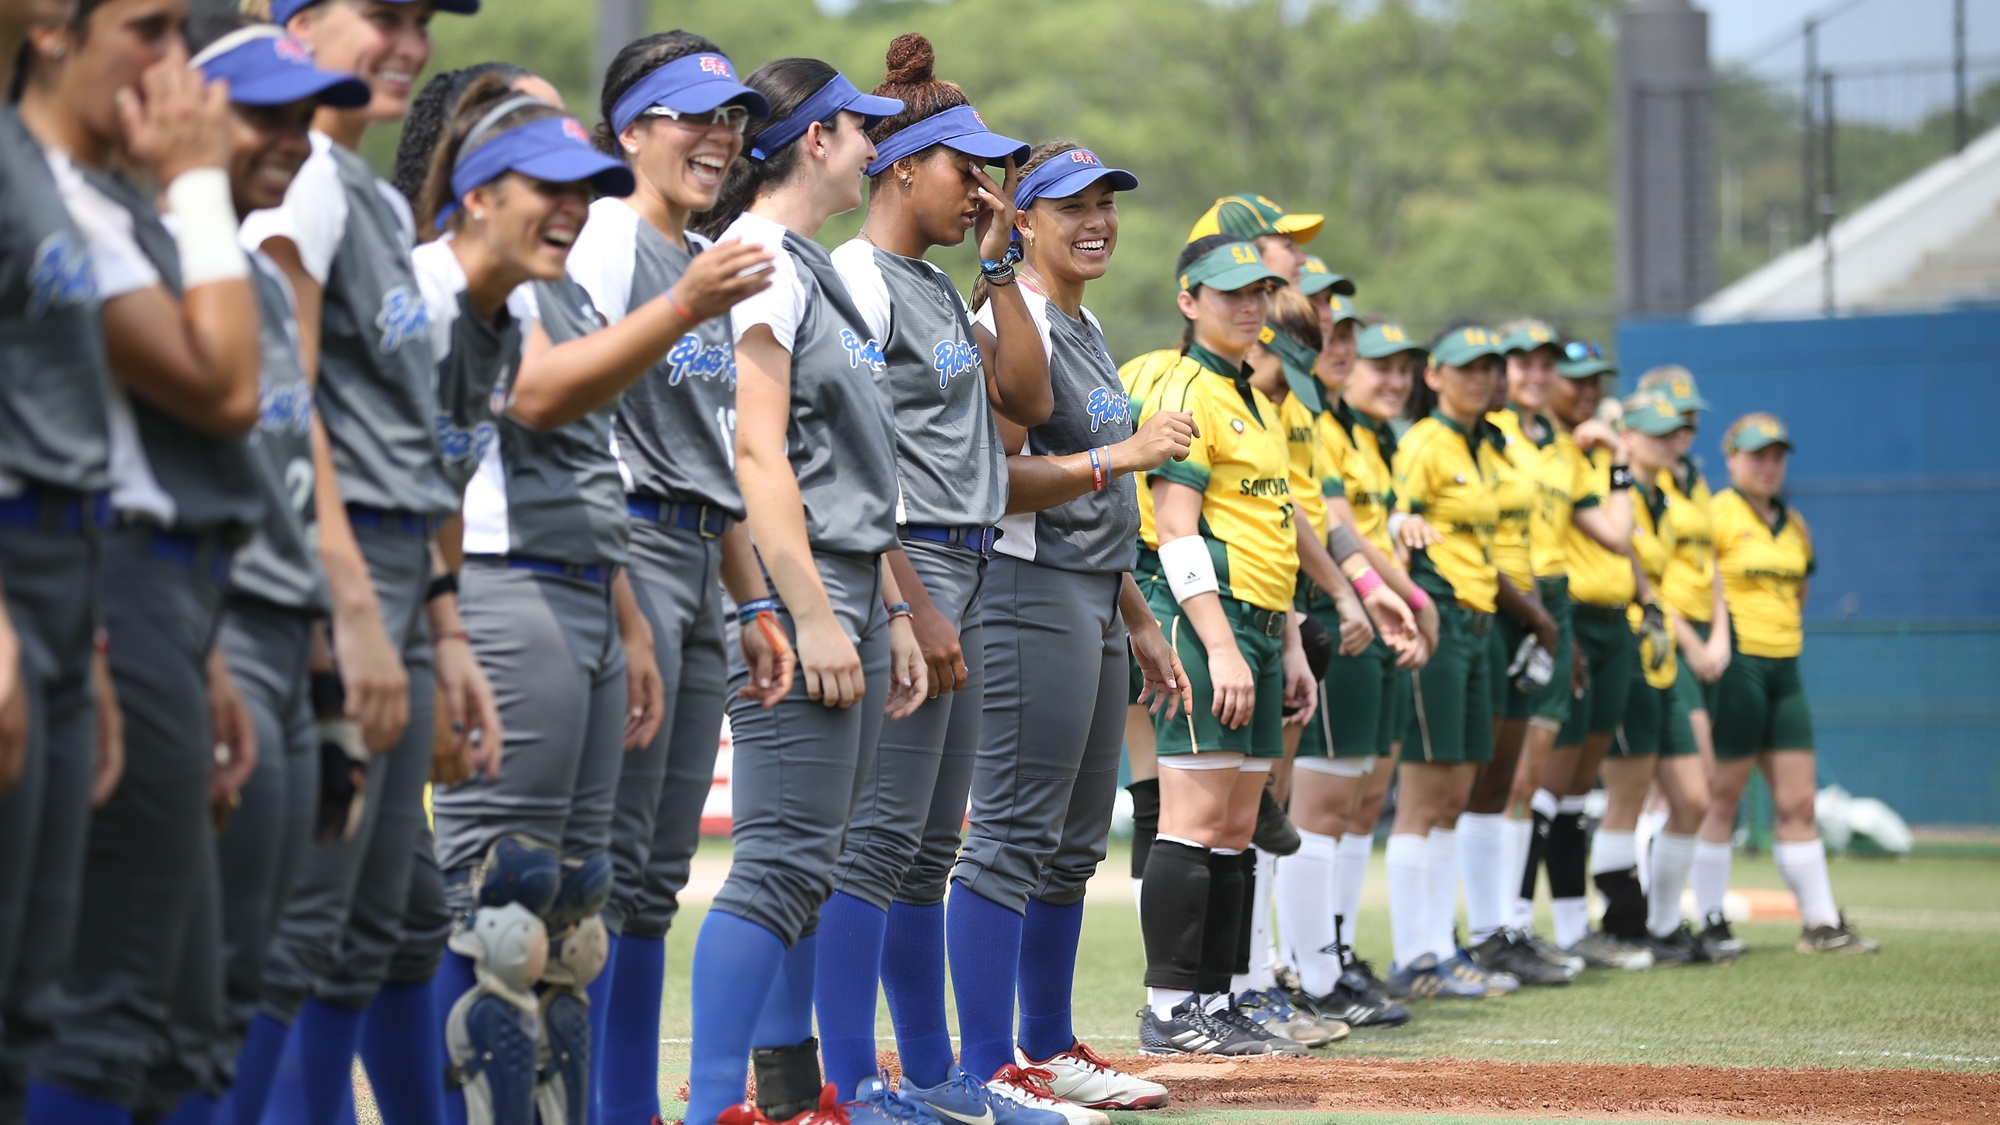 Puerto Rico faced South Africa at Zett A Ballpark